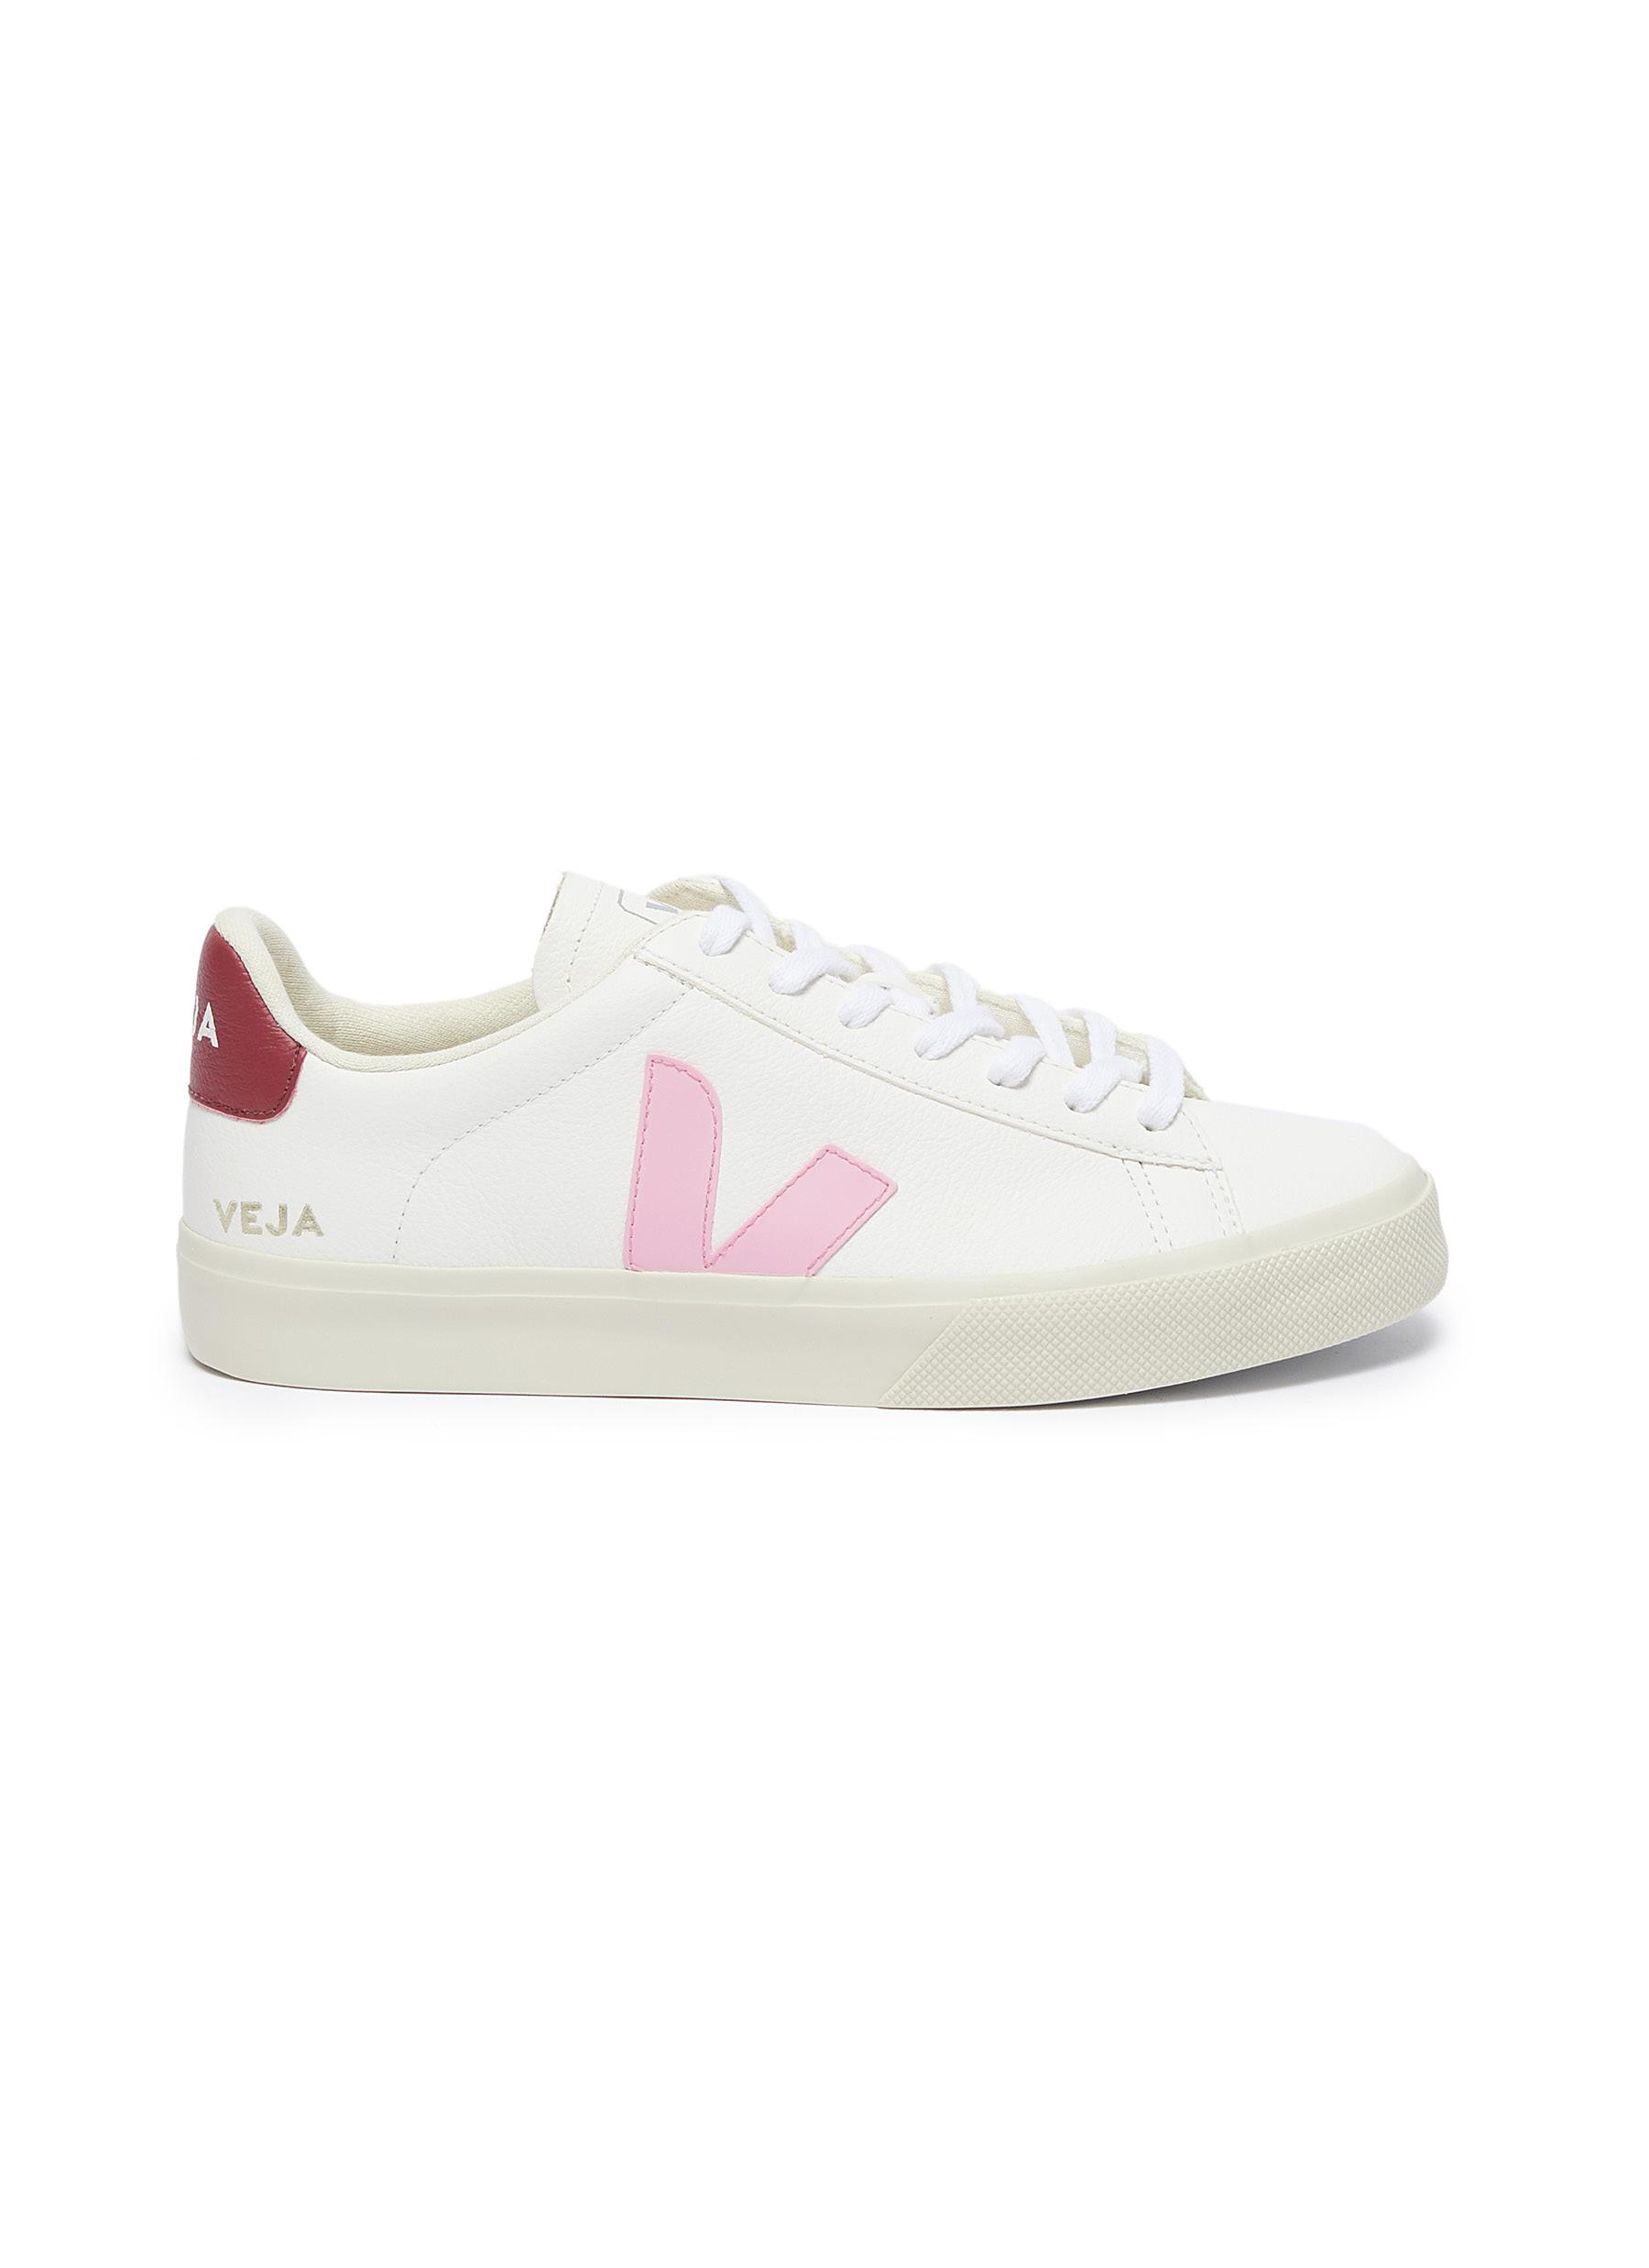 Veja Leathers 'CAMPO' CHROMEFREE LEATHER SNEAKERS